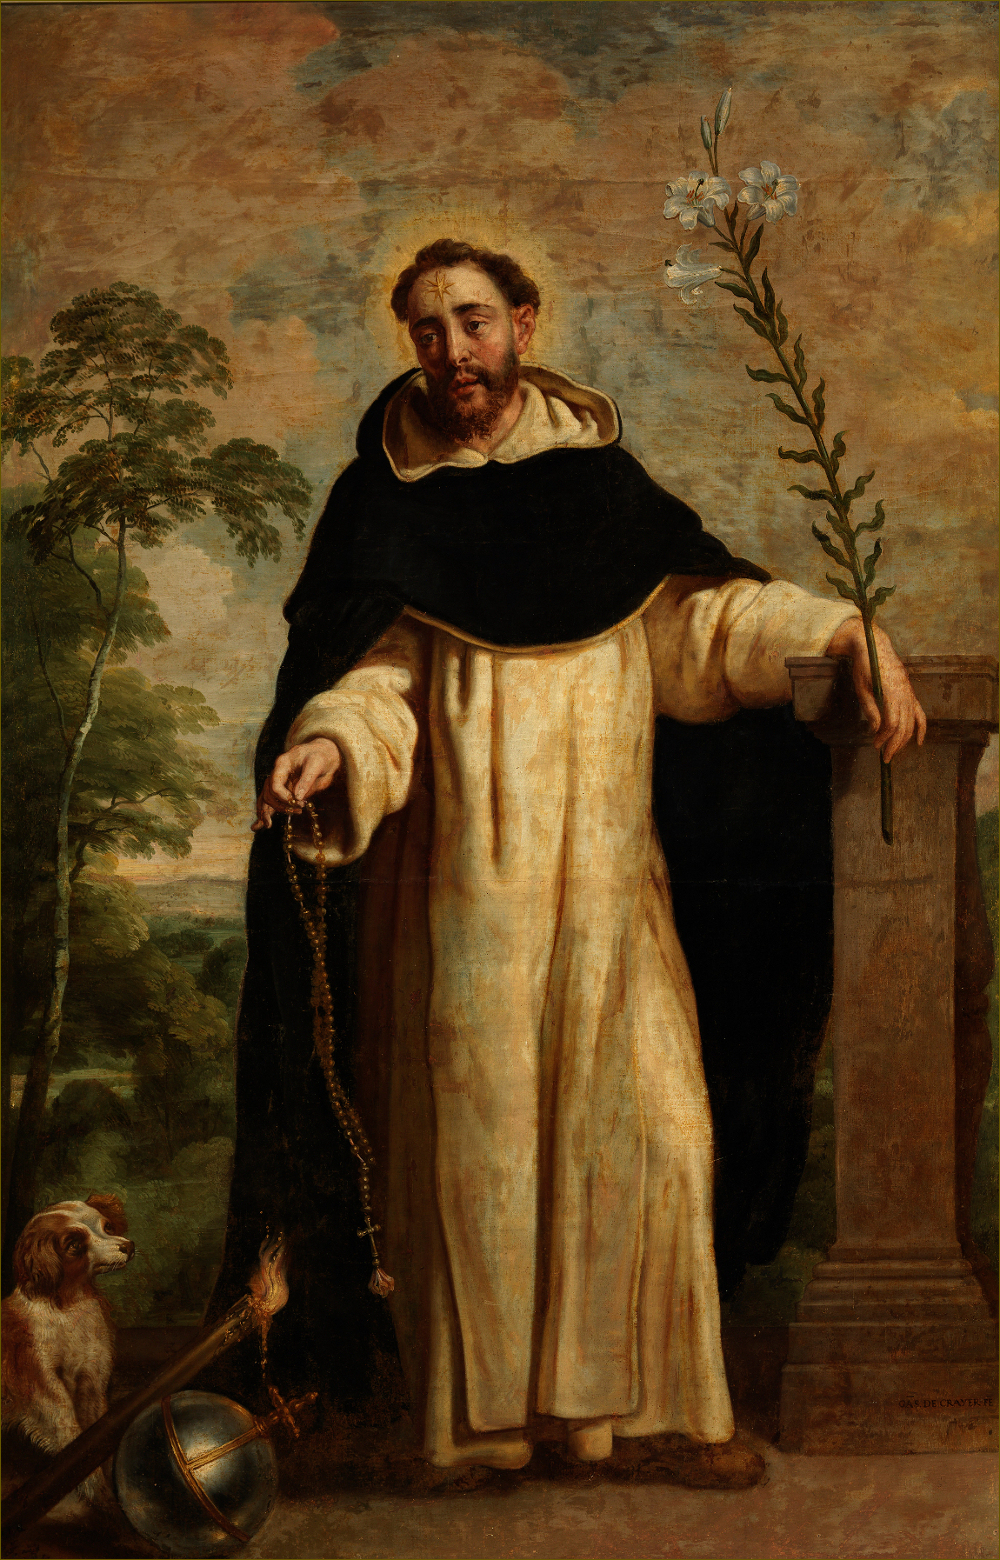 Saint Dominique de Guzman, par Gaspard de Crayer (1655)